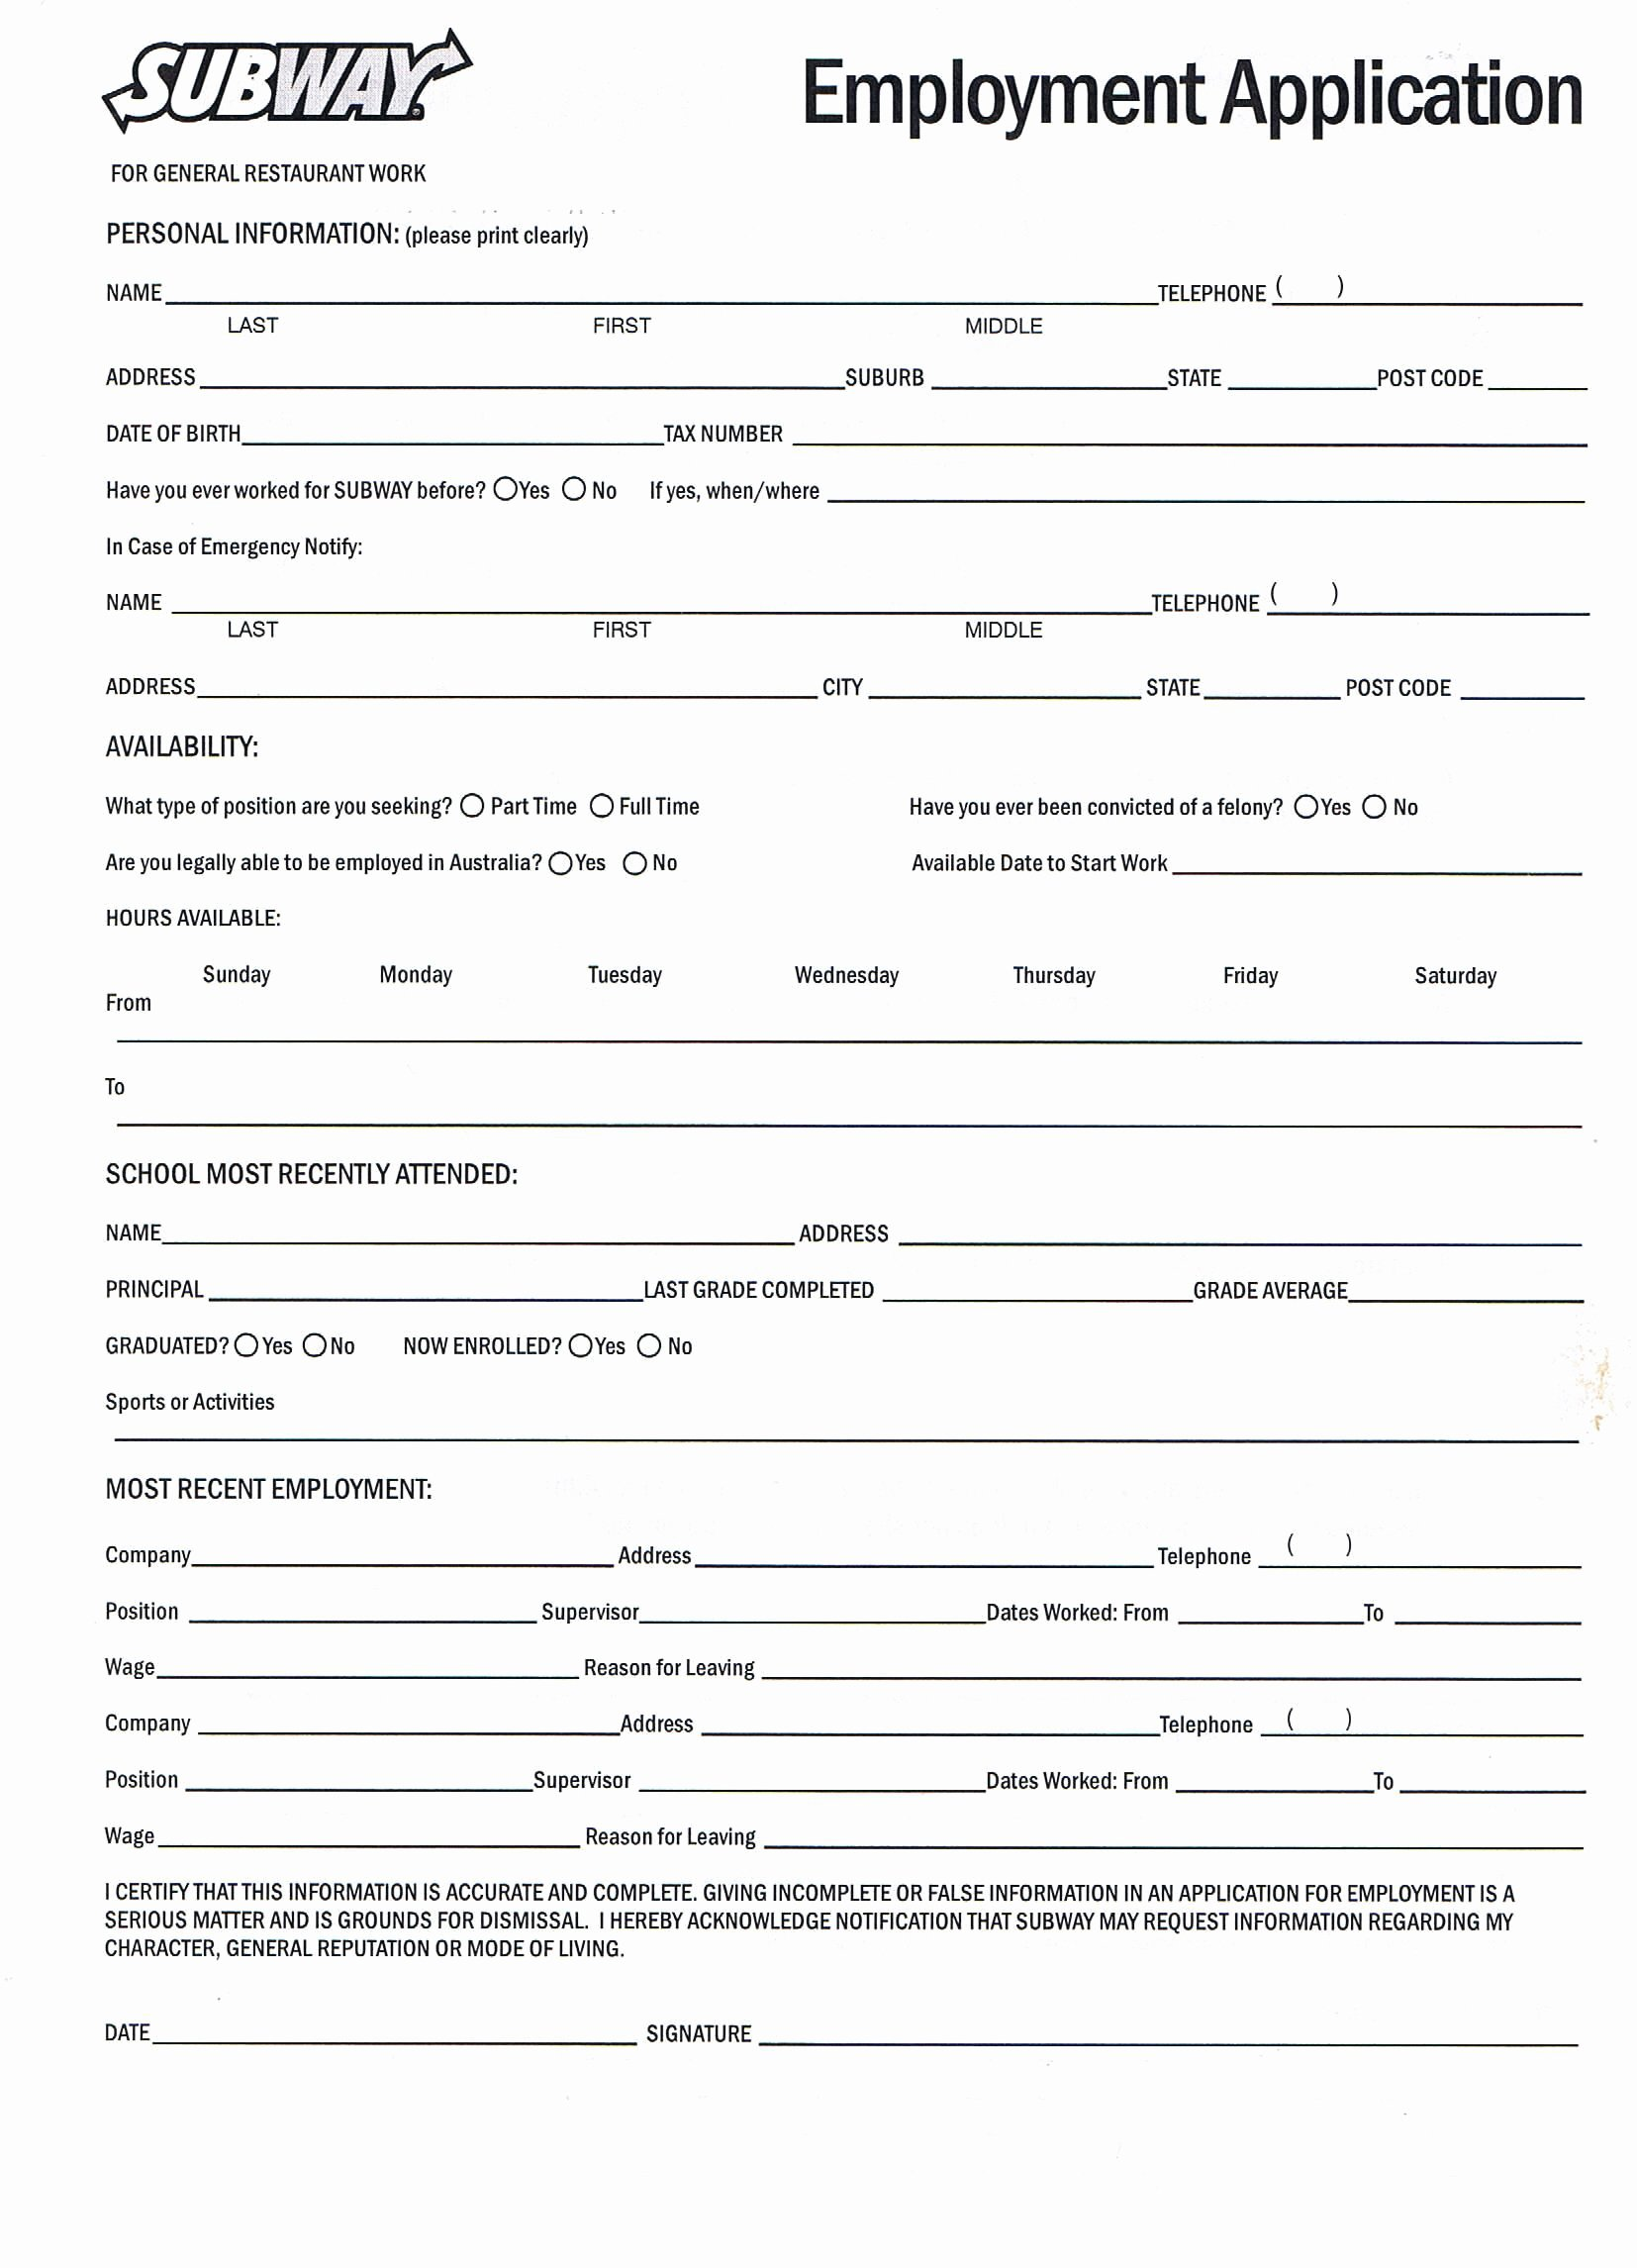 Online Printable Job Applications Awesome Printable Job Application forms Online forms Download and